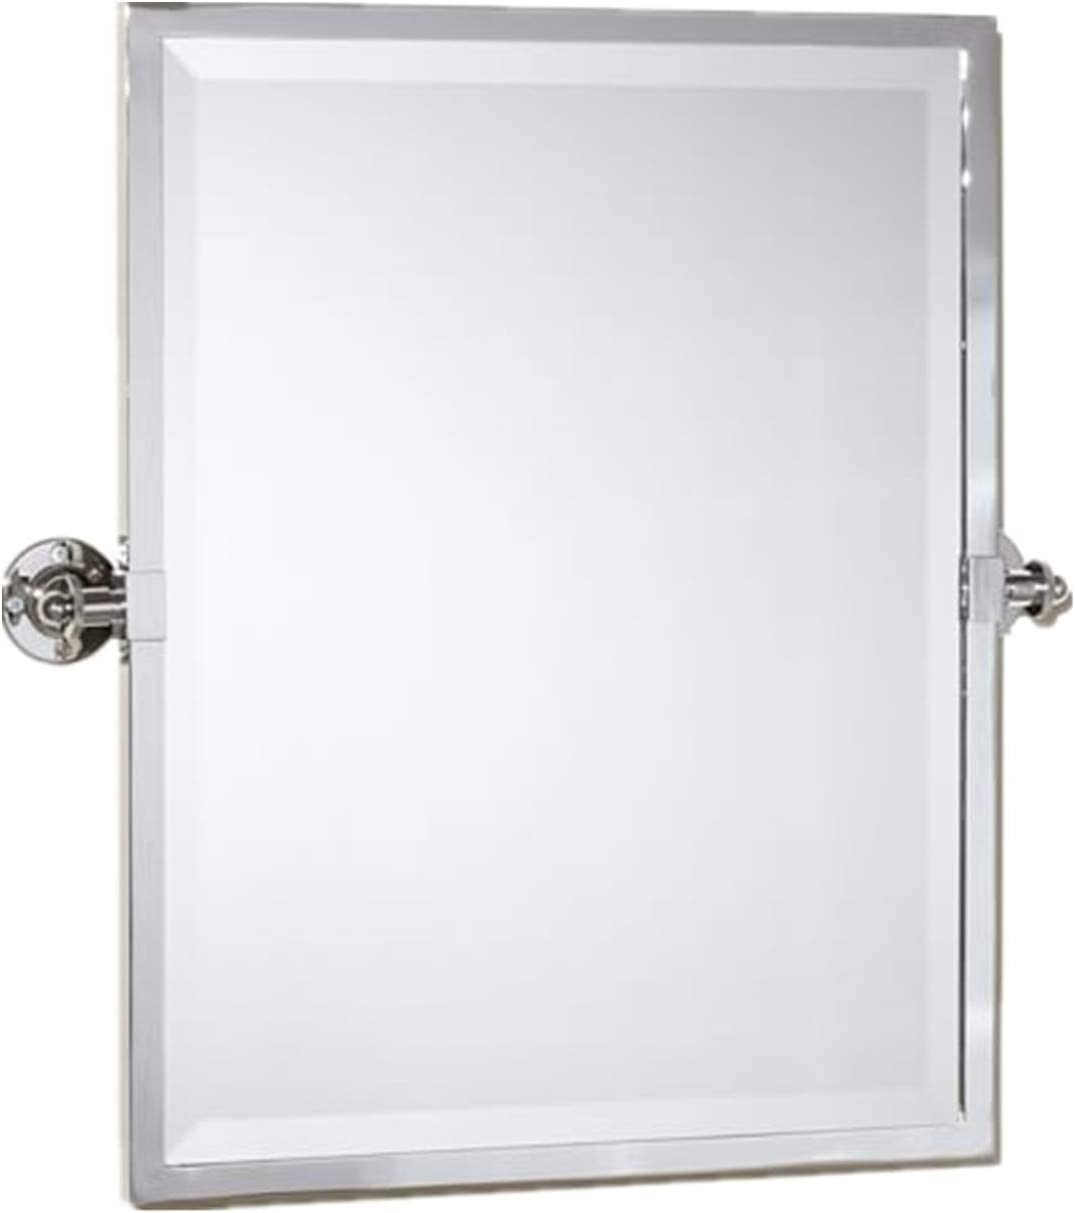 TEHOME Black Metal Framed Pivot Rectangle Bathroom Mirror Tilting Beveled Vanity Mirrors for Wall 23 x 24 inches